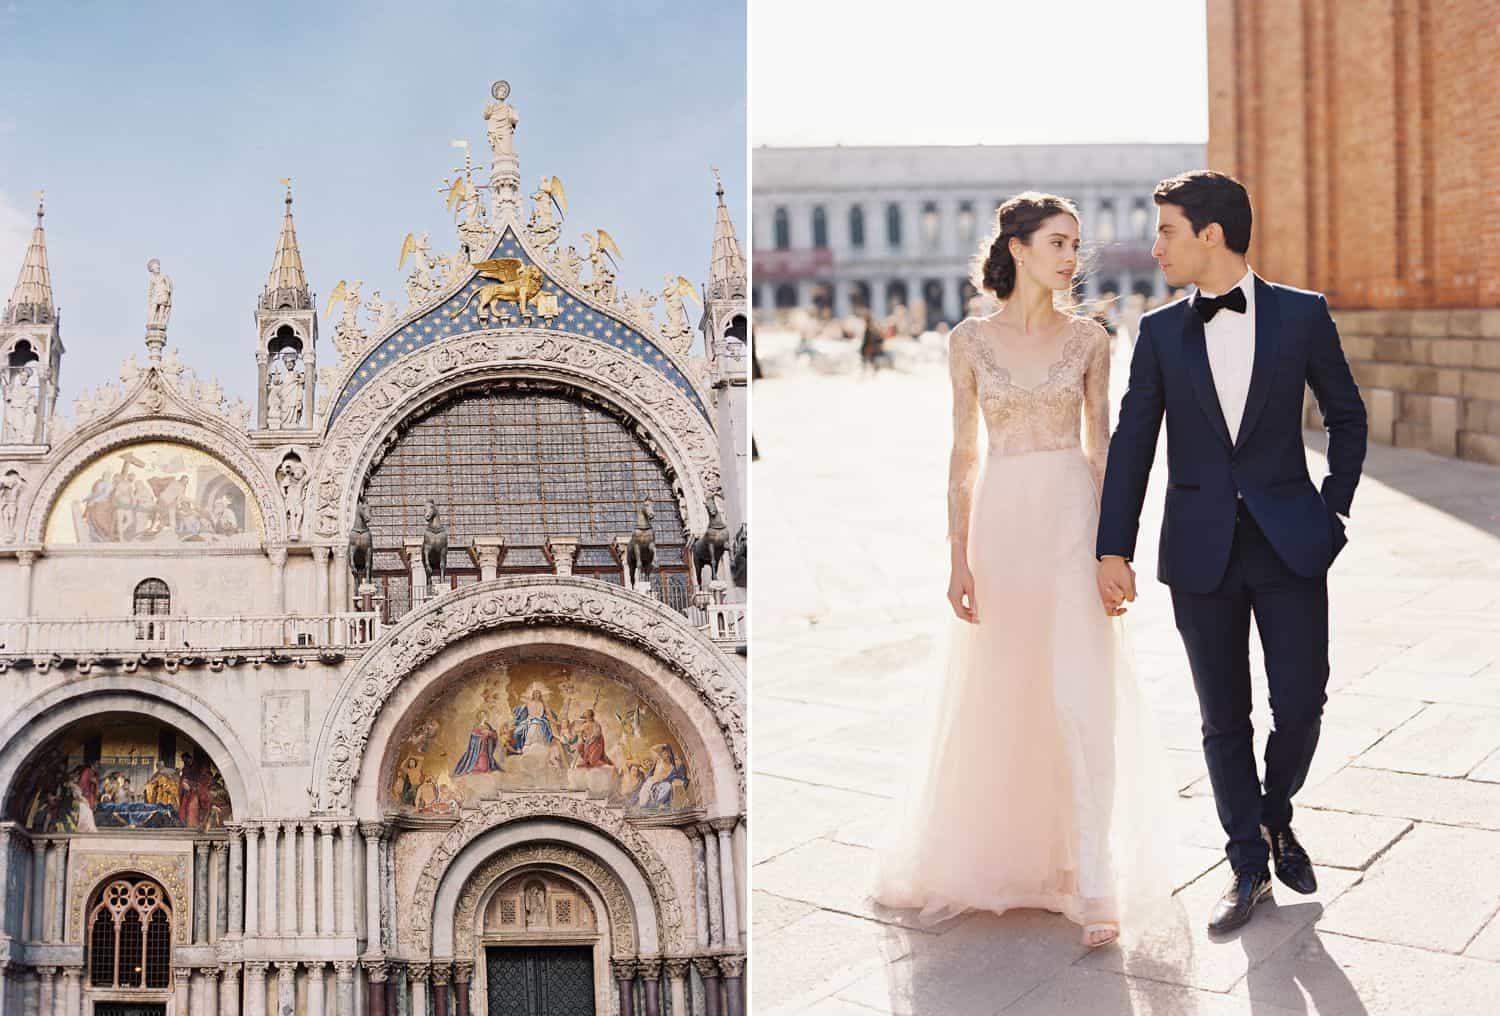 A bride in a pink dress walks through an Italian courtyard with her groom who's wearing a blue tuxedo.